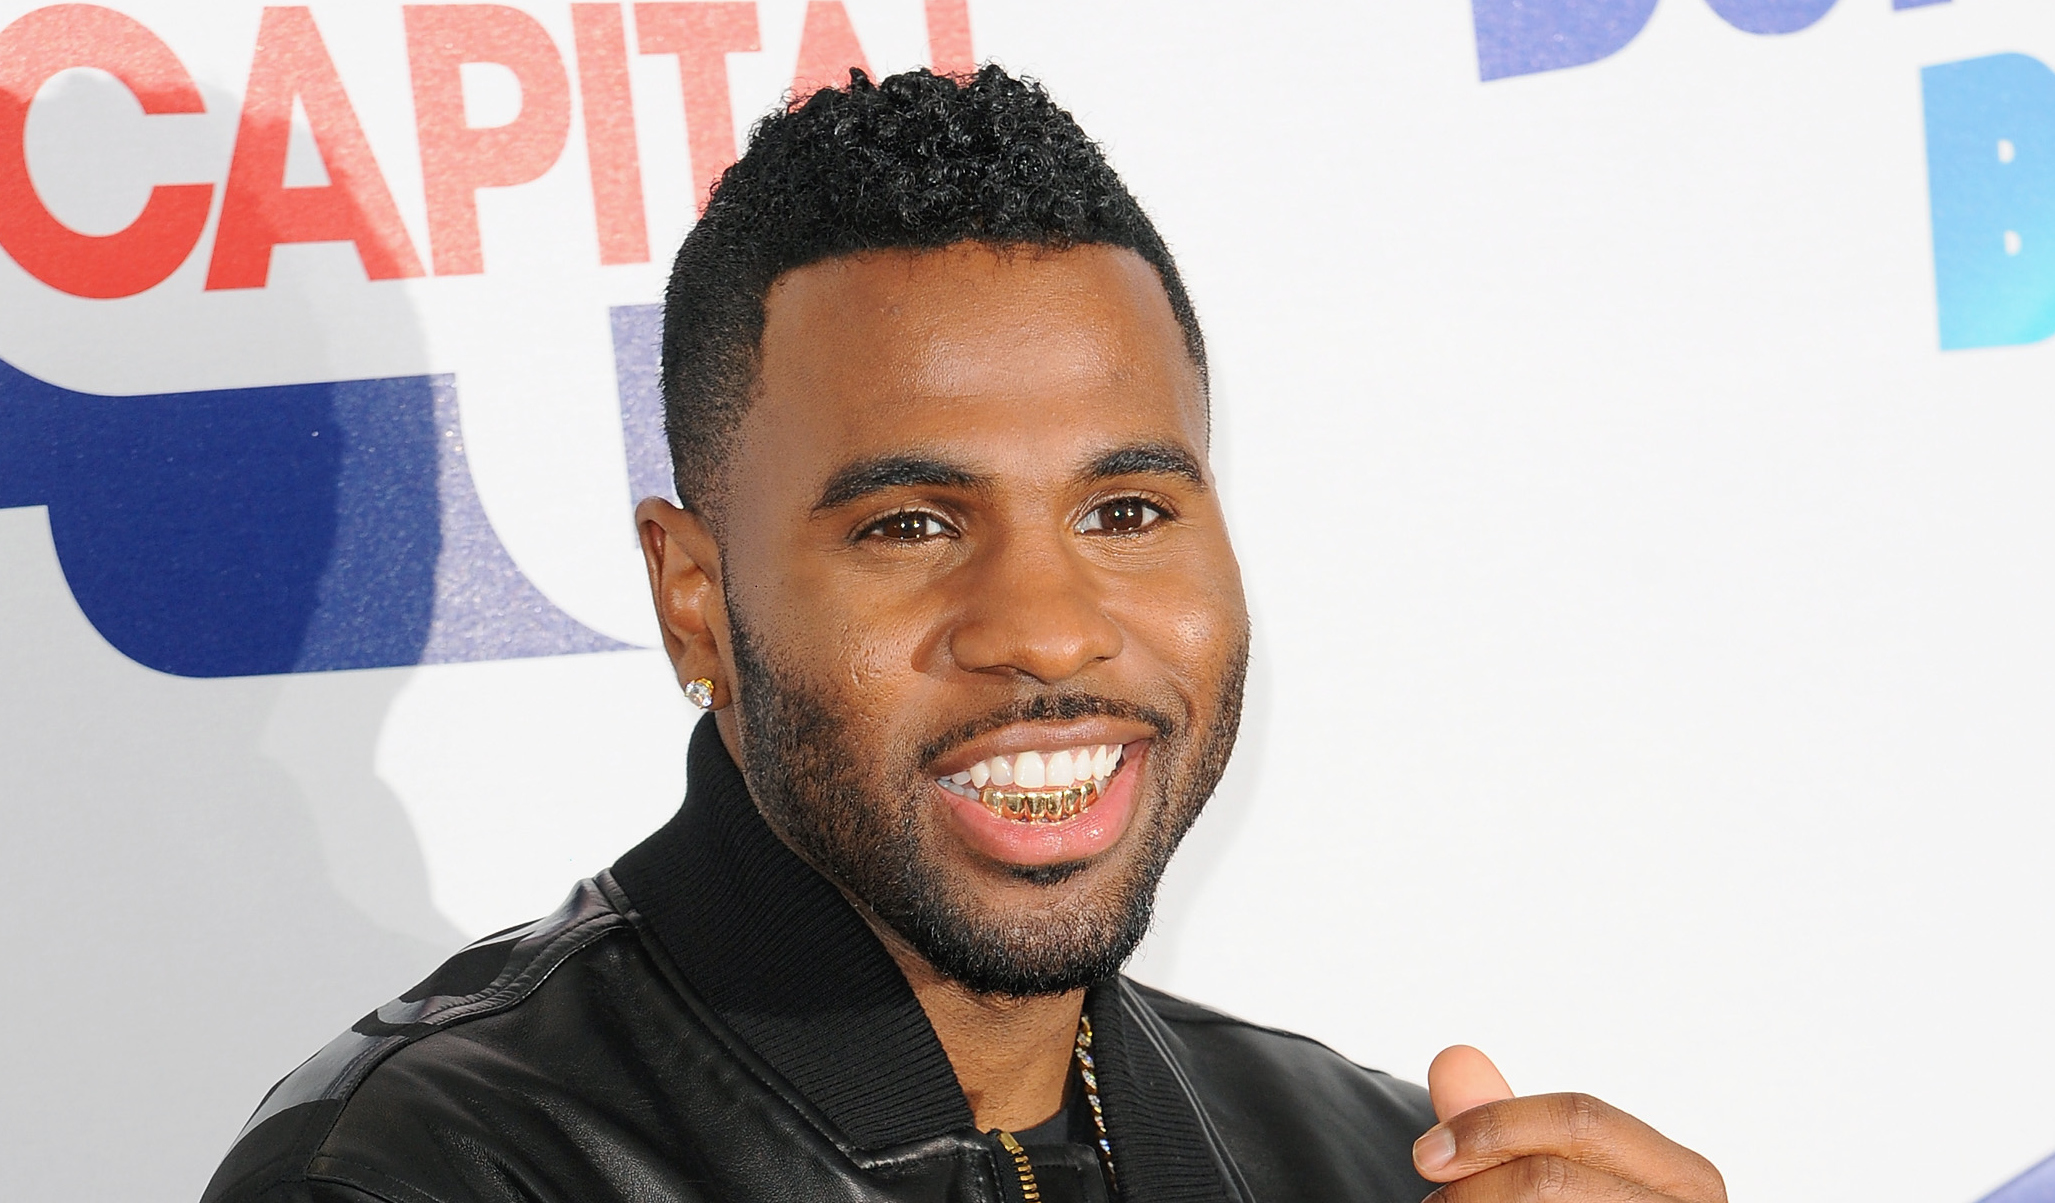 Jason Derulo fuming after Instagram removes his revealing underwear pic